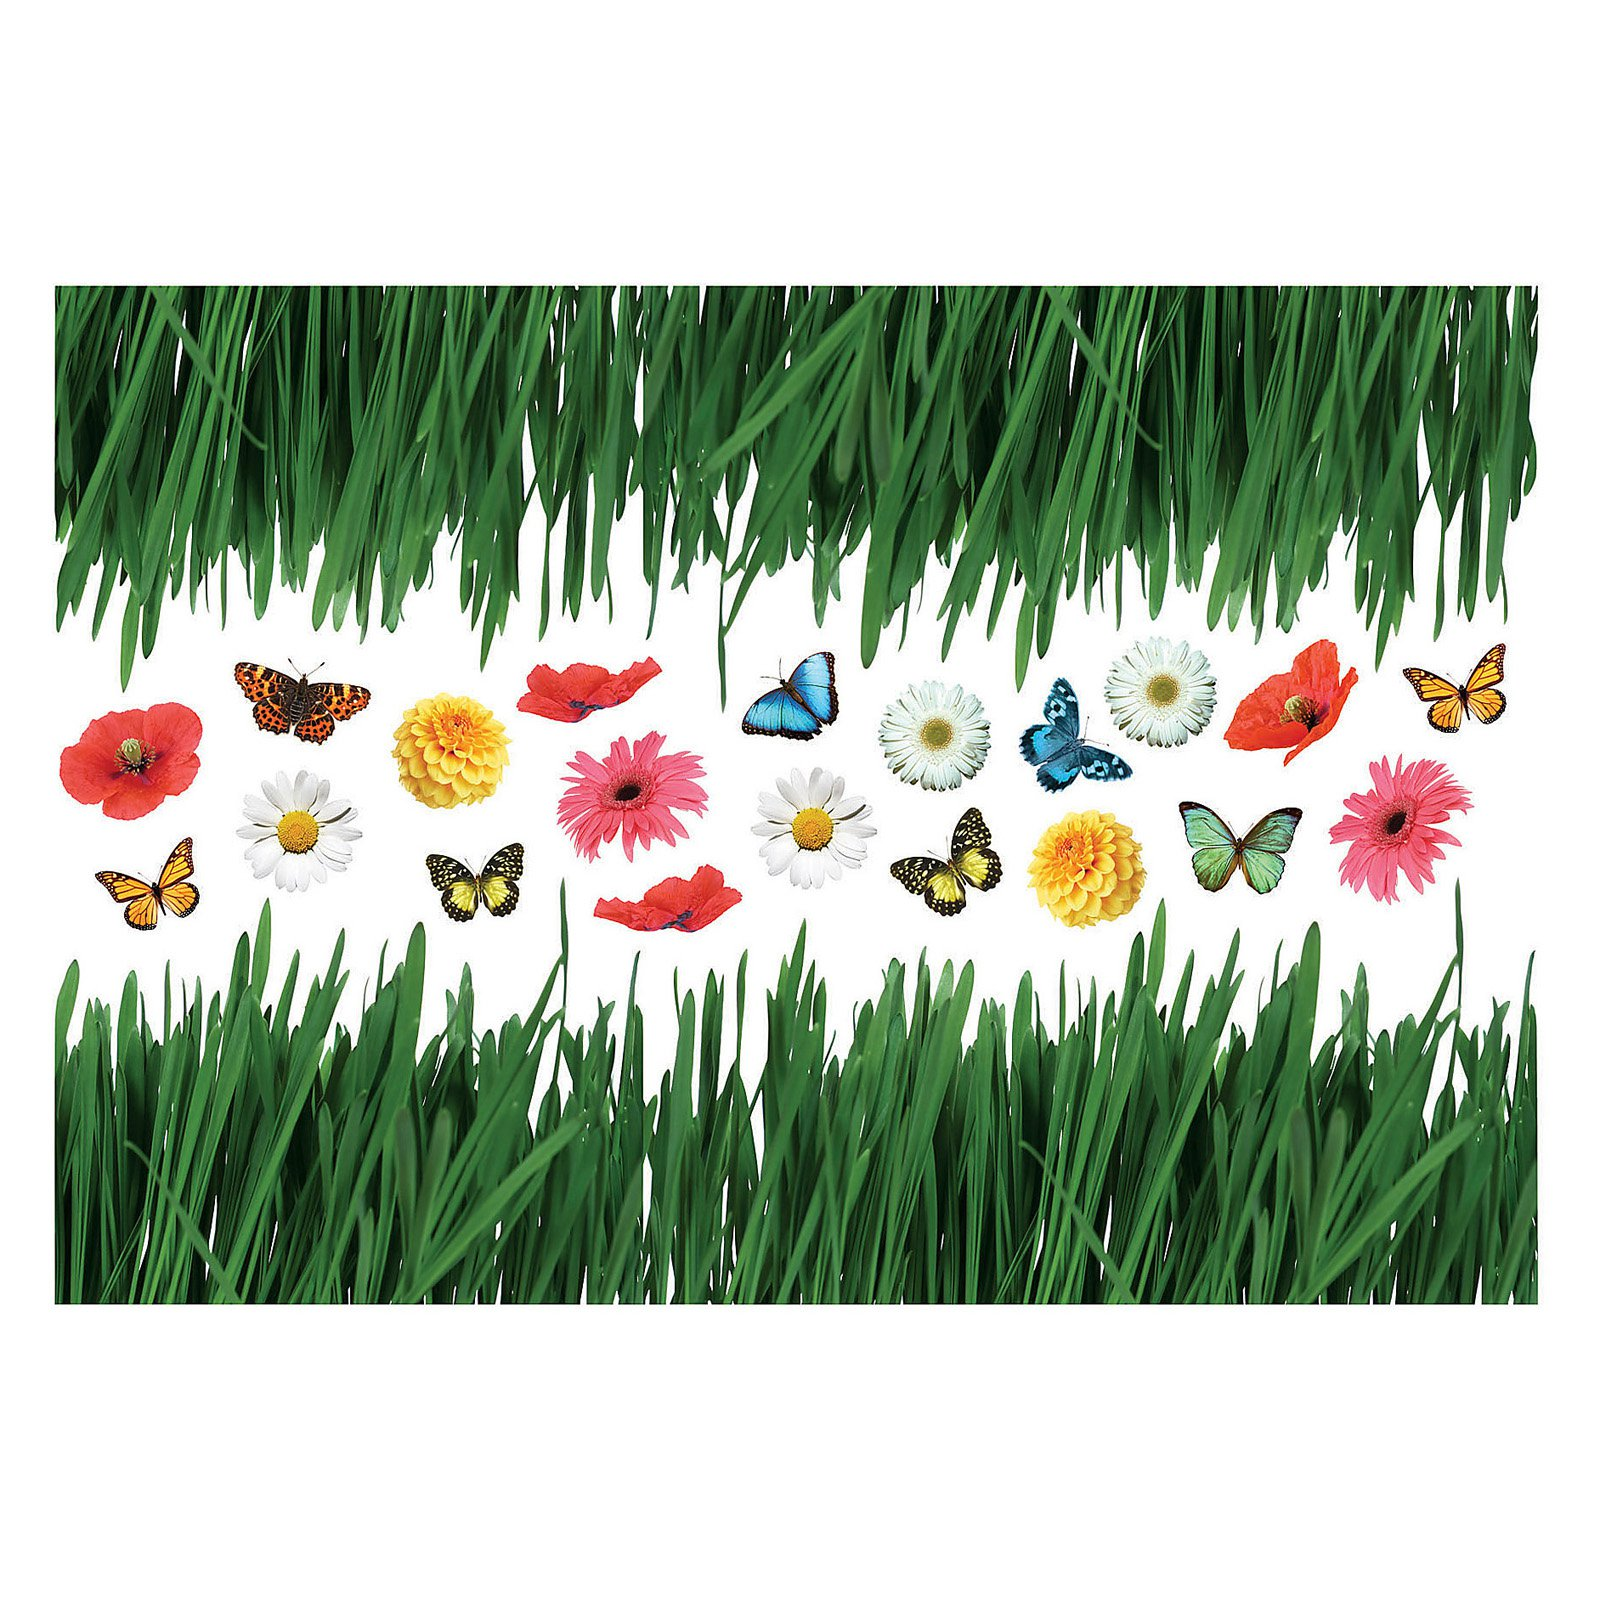 Home Decor Line Grass With Butterflies and Flowers Wall Decals